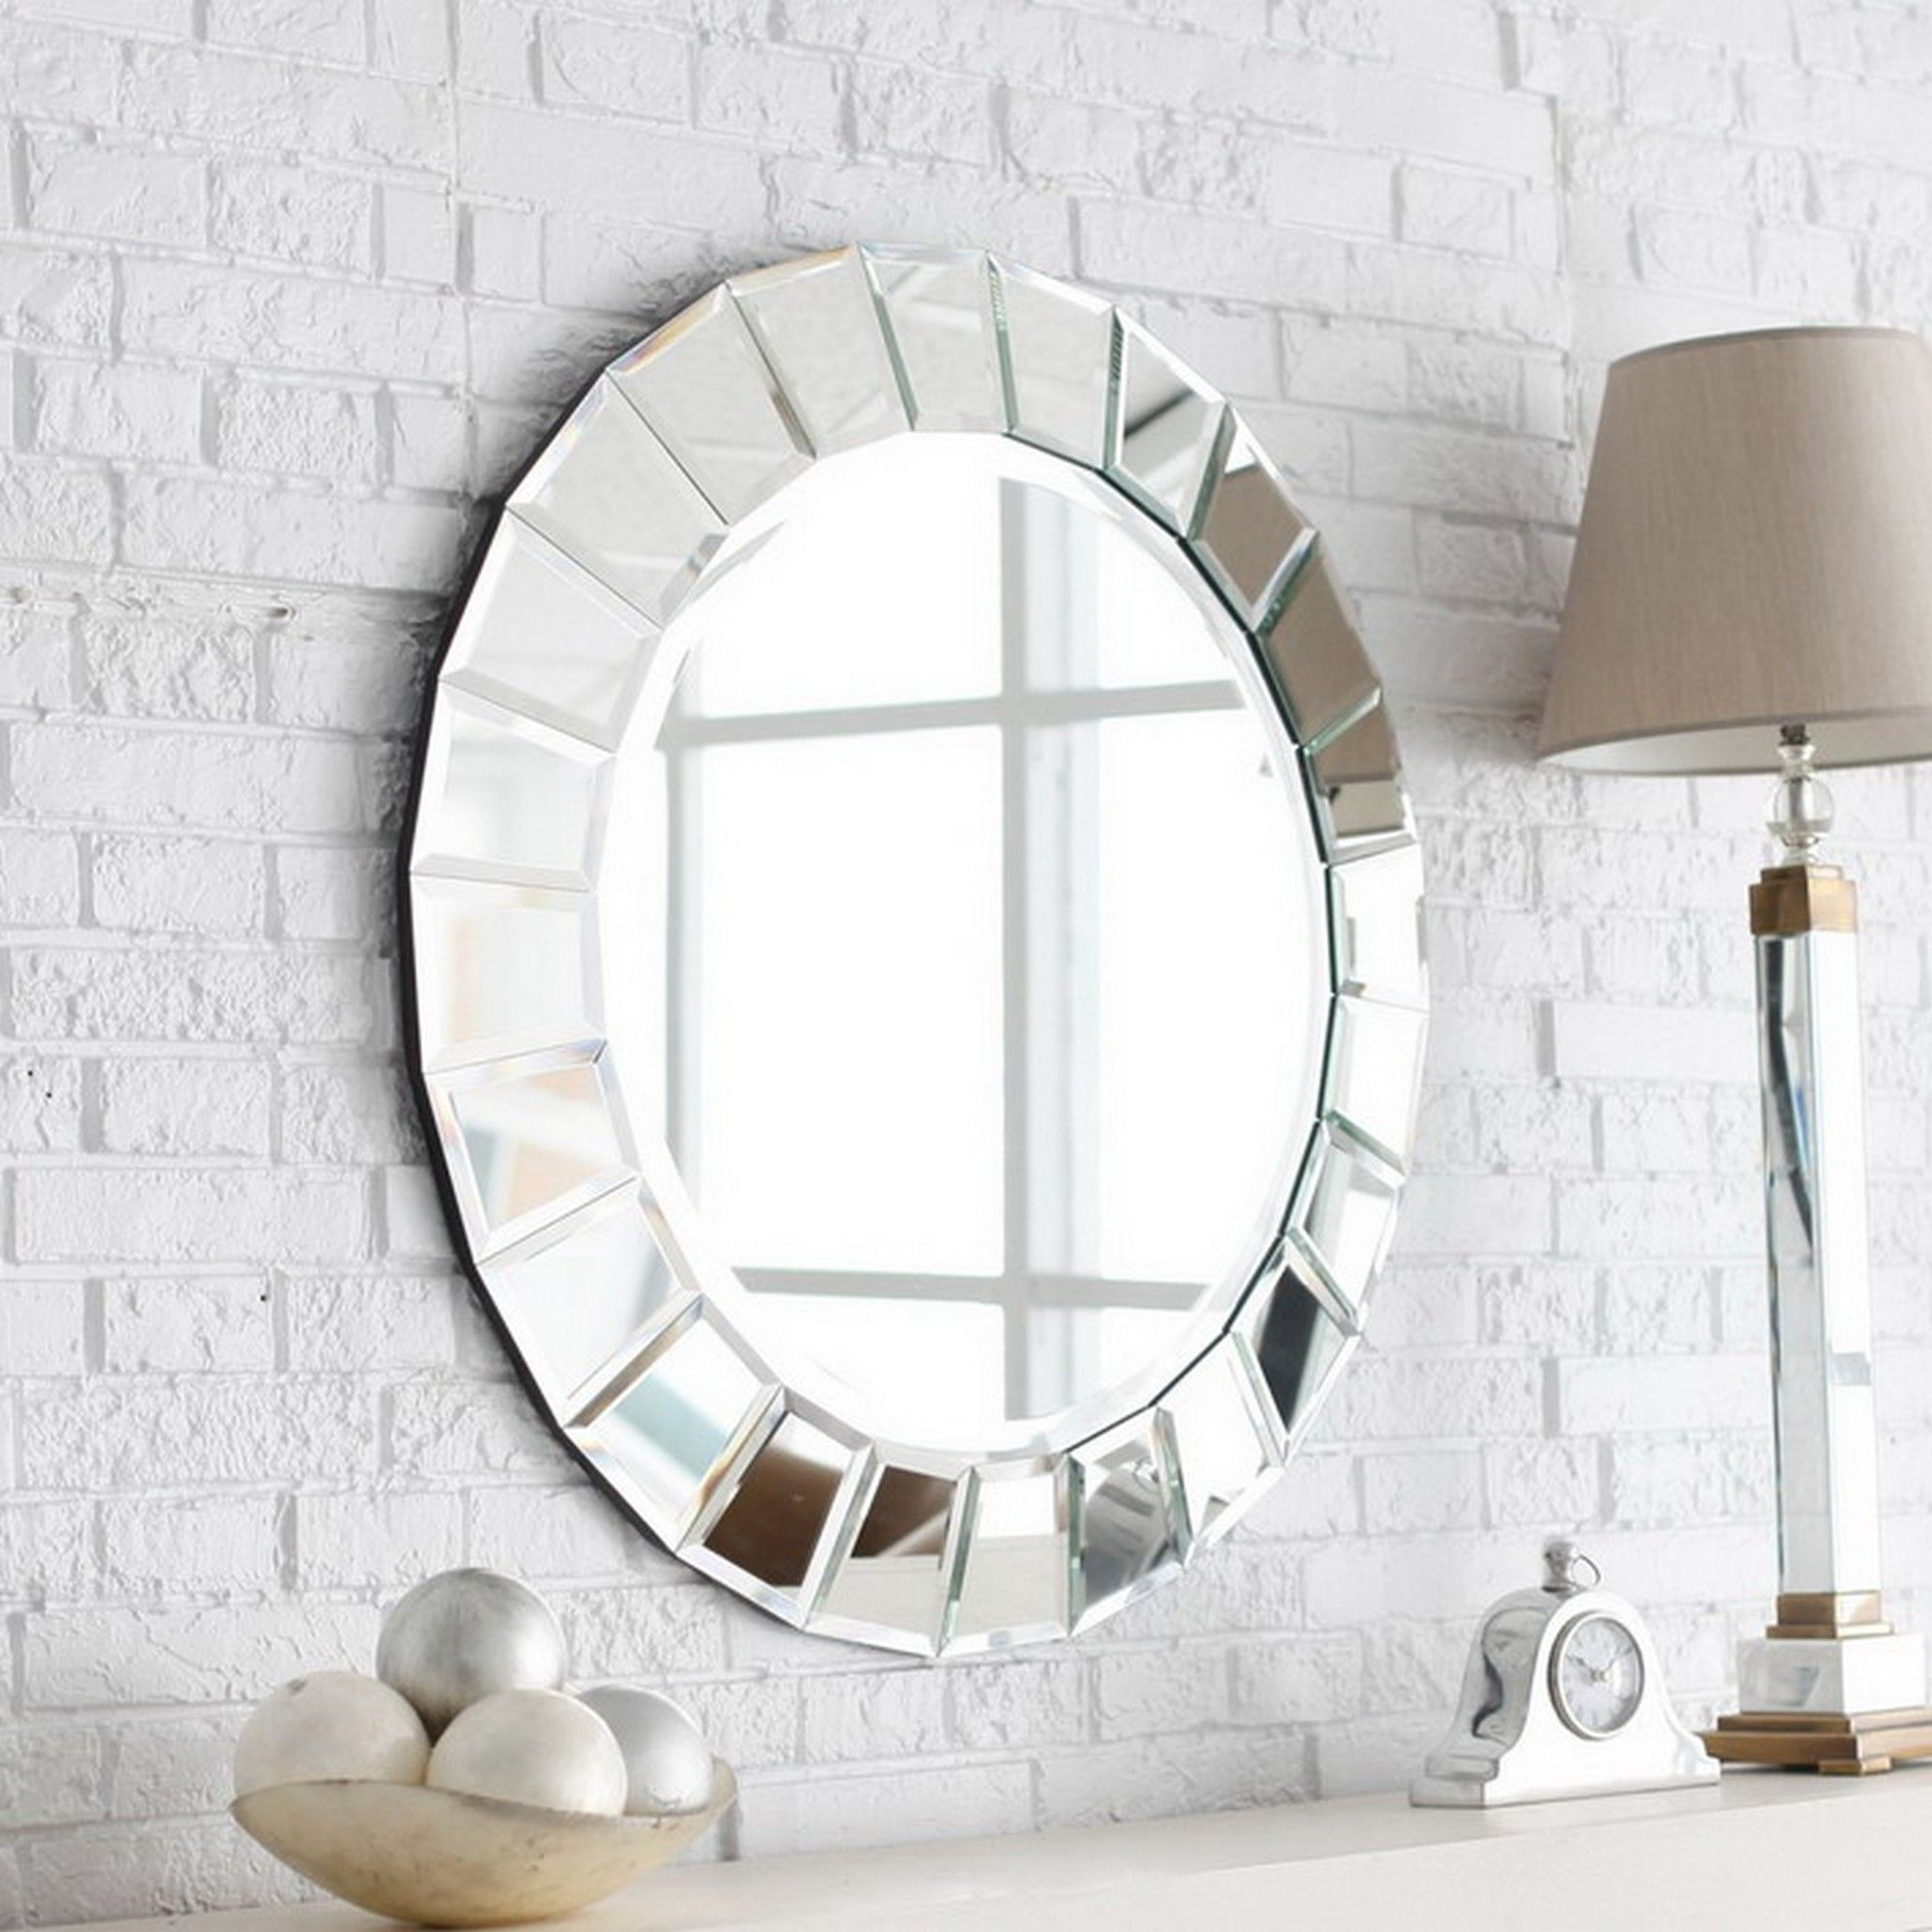 Delicieux Designer Round Bathroom Mirrors Ideas